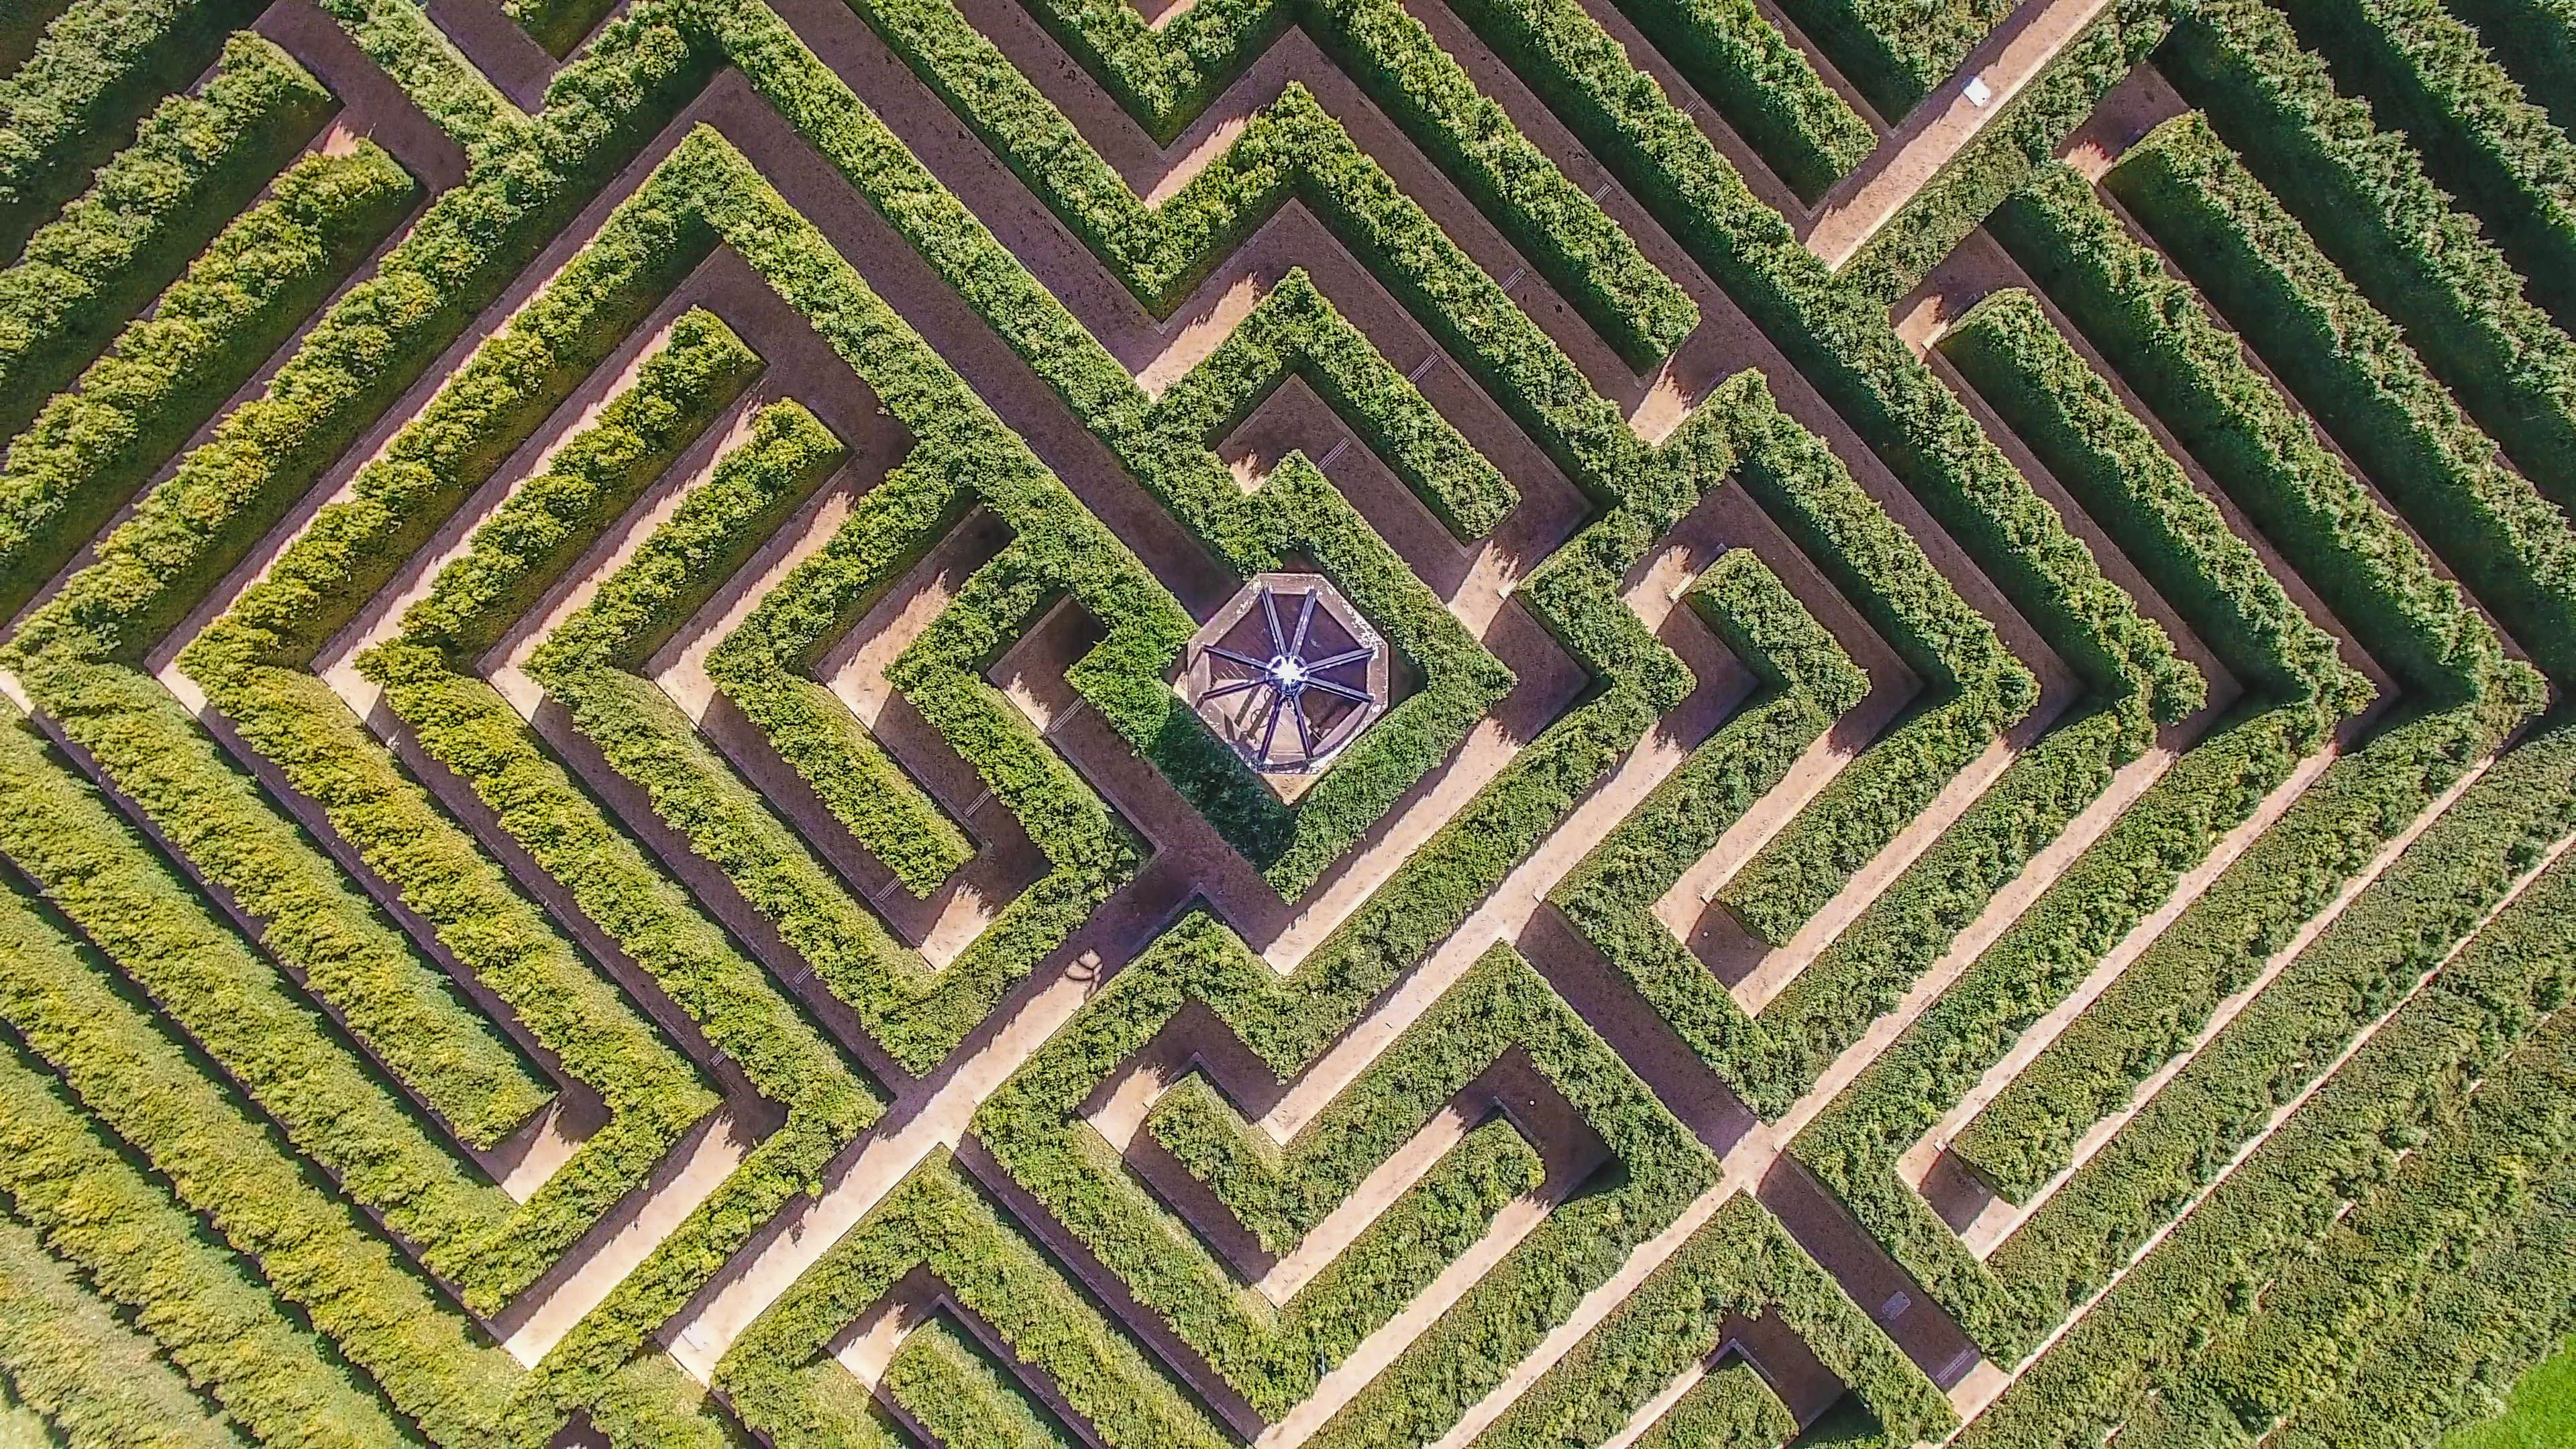 Get lost in Mayfield's English inspired maze during the